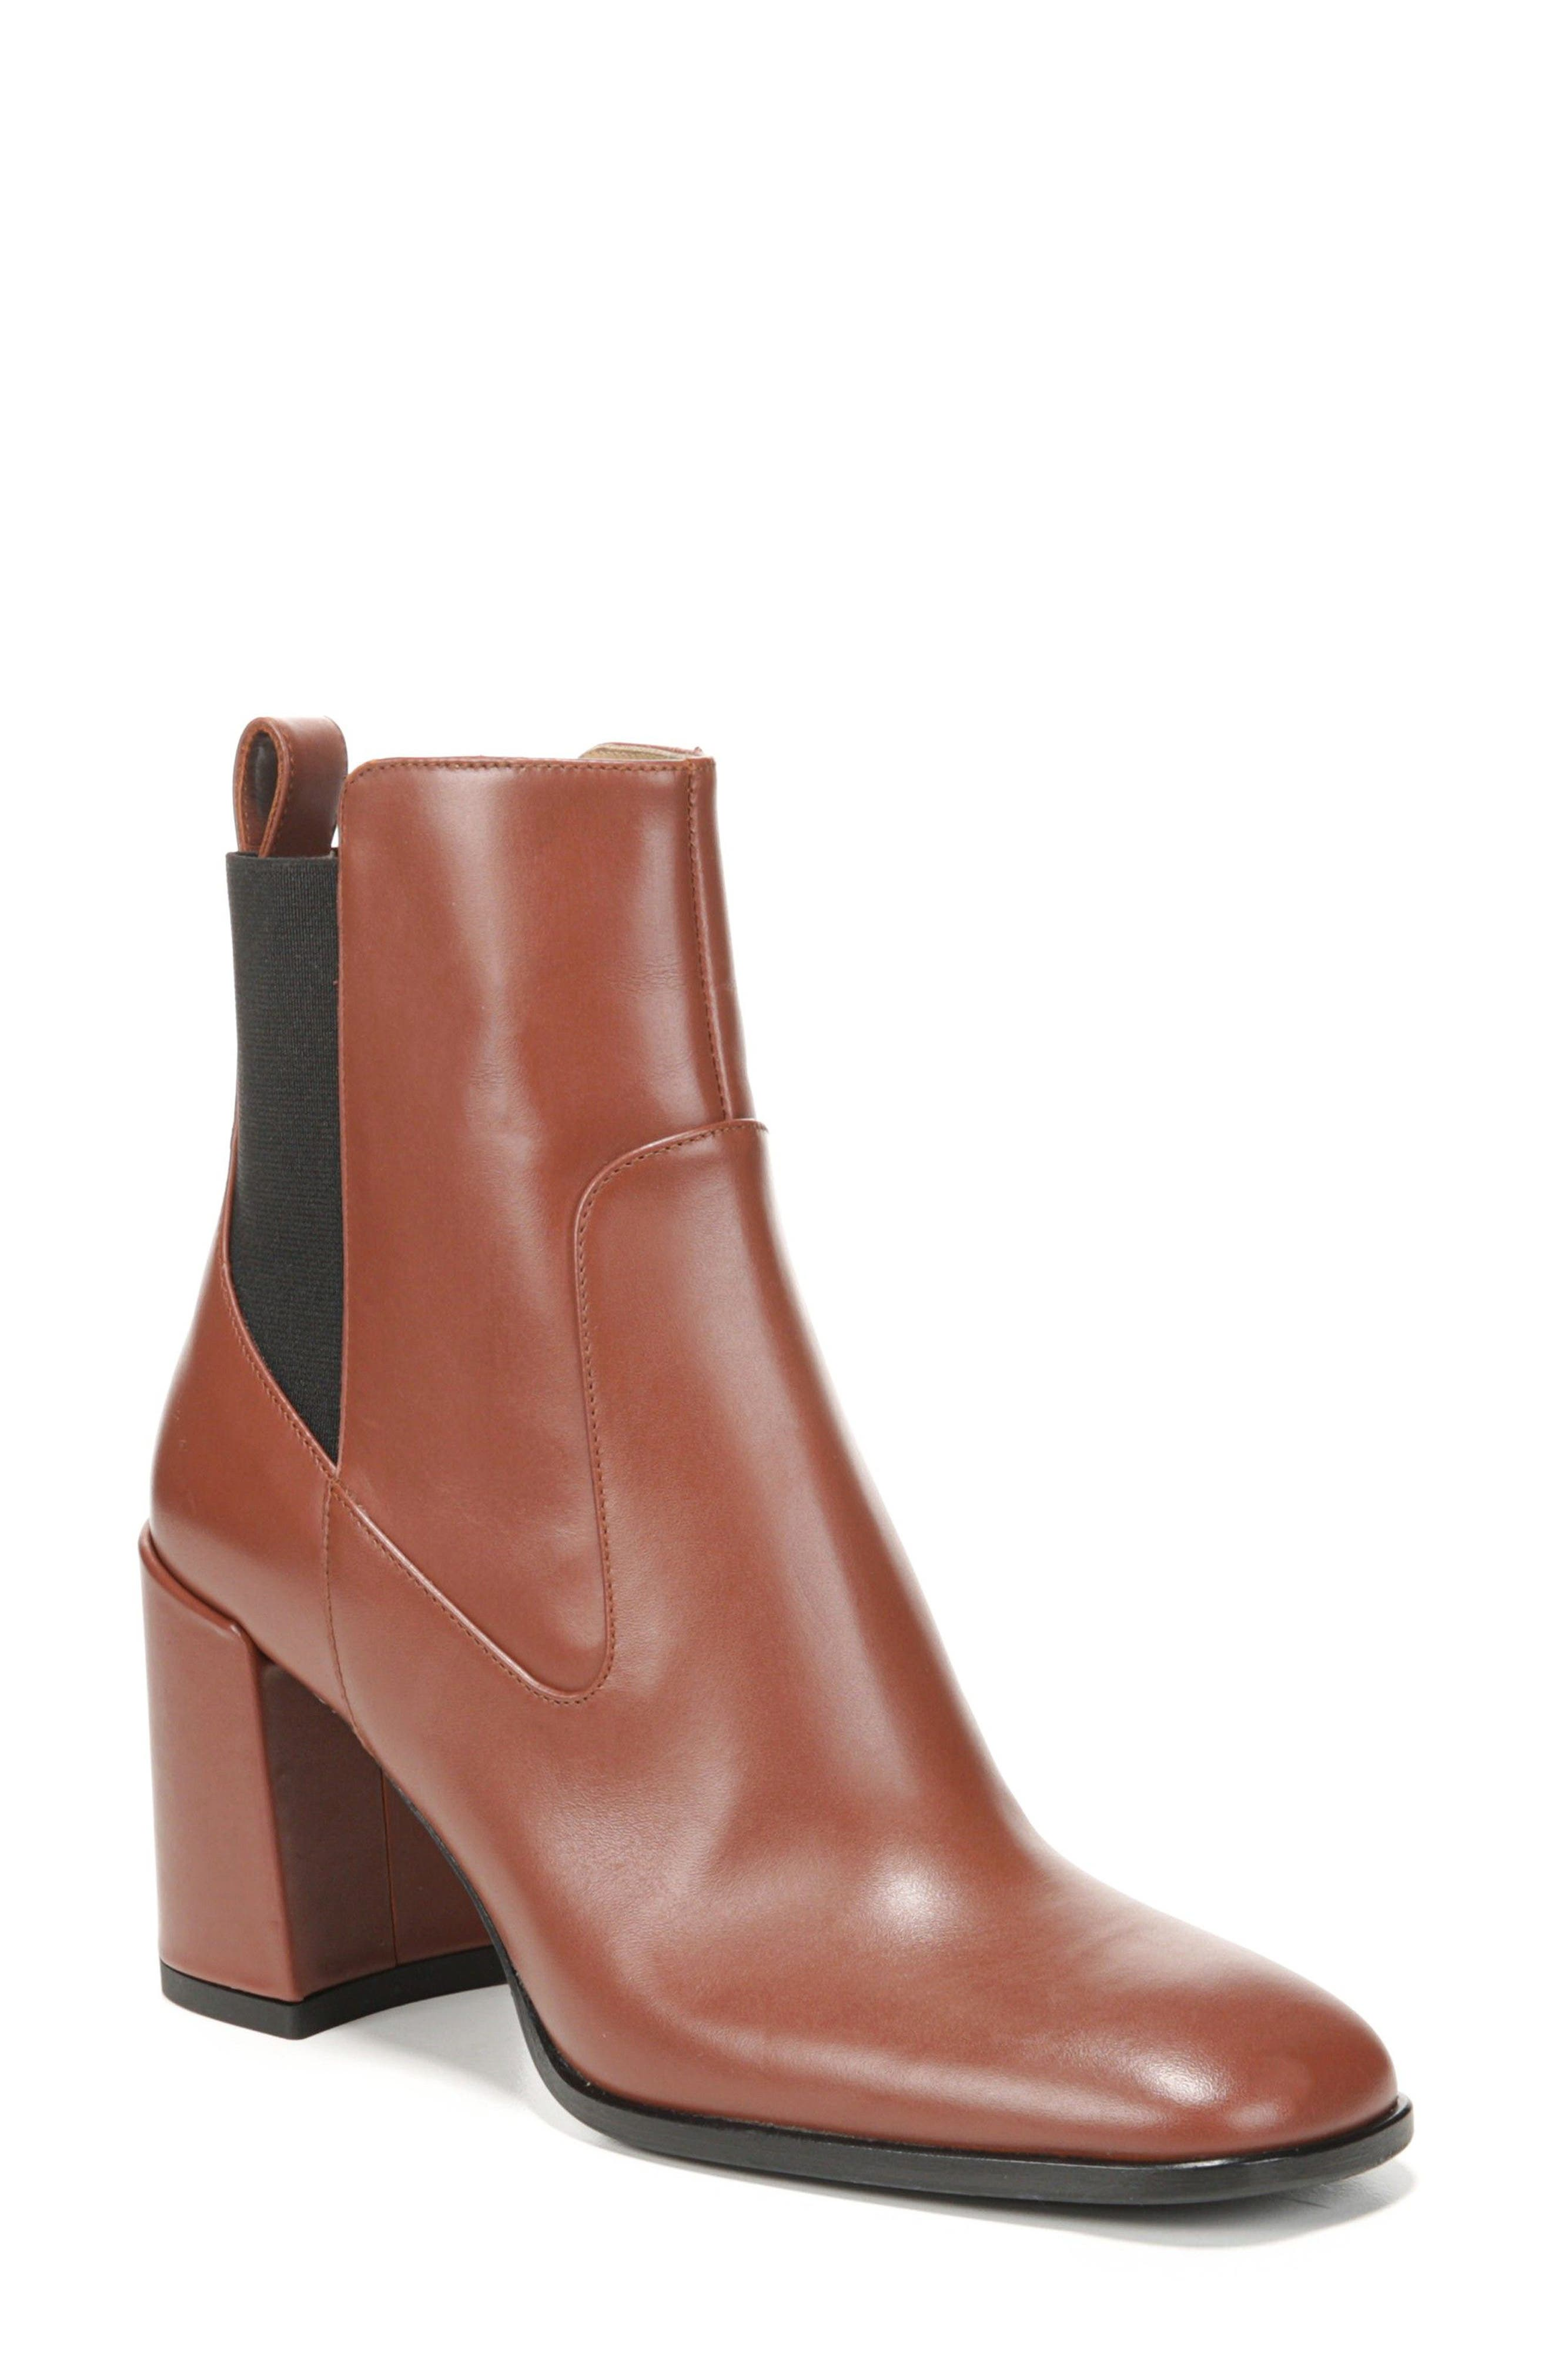 Delaney Block Heel Bootie,                             Main thumbnail 1, color,                             Warm Chestnut Leather